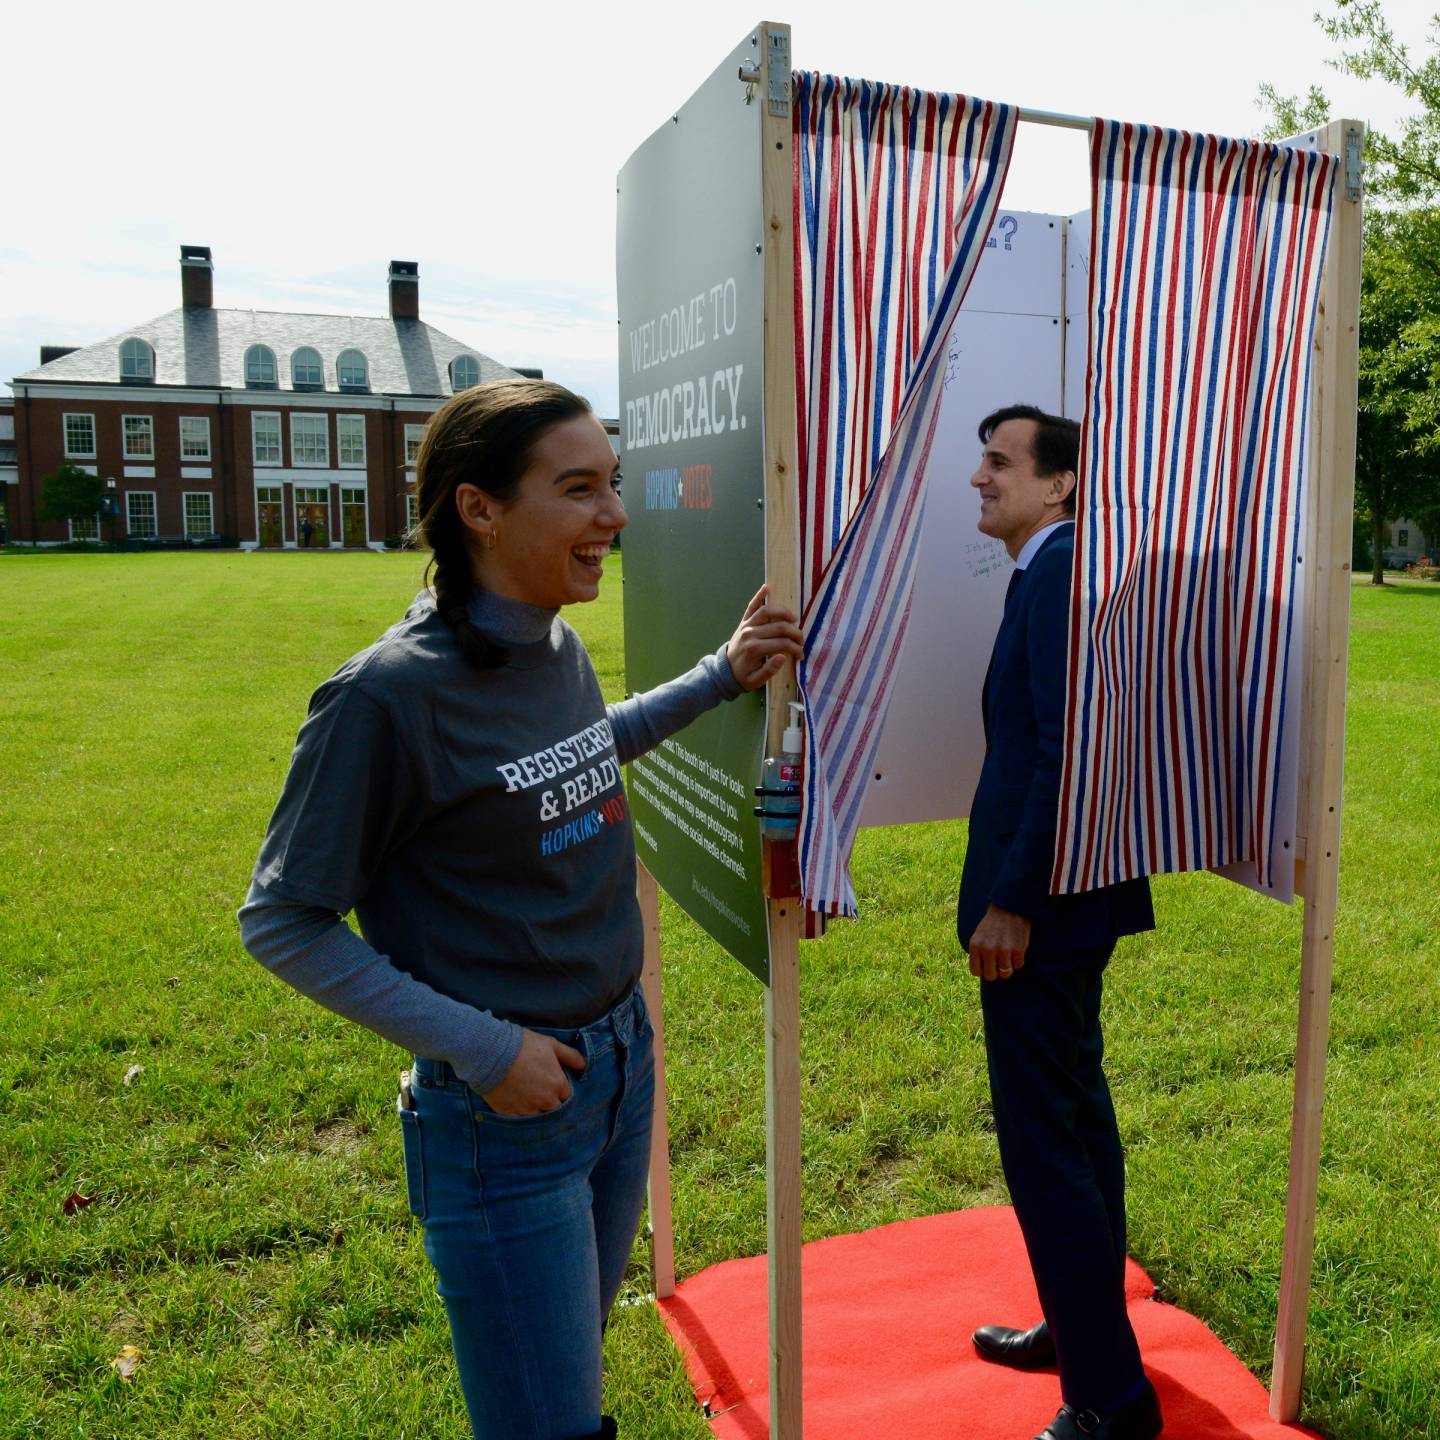 A student and Ron Daniels interact with the voter booth